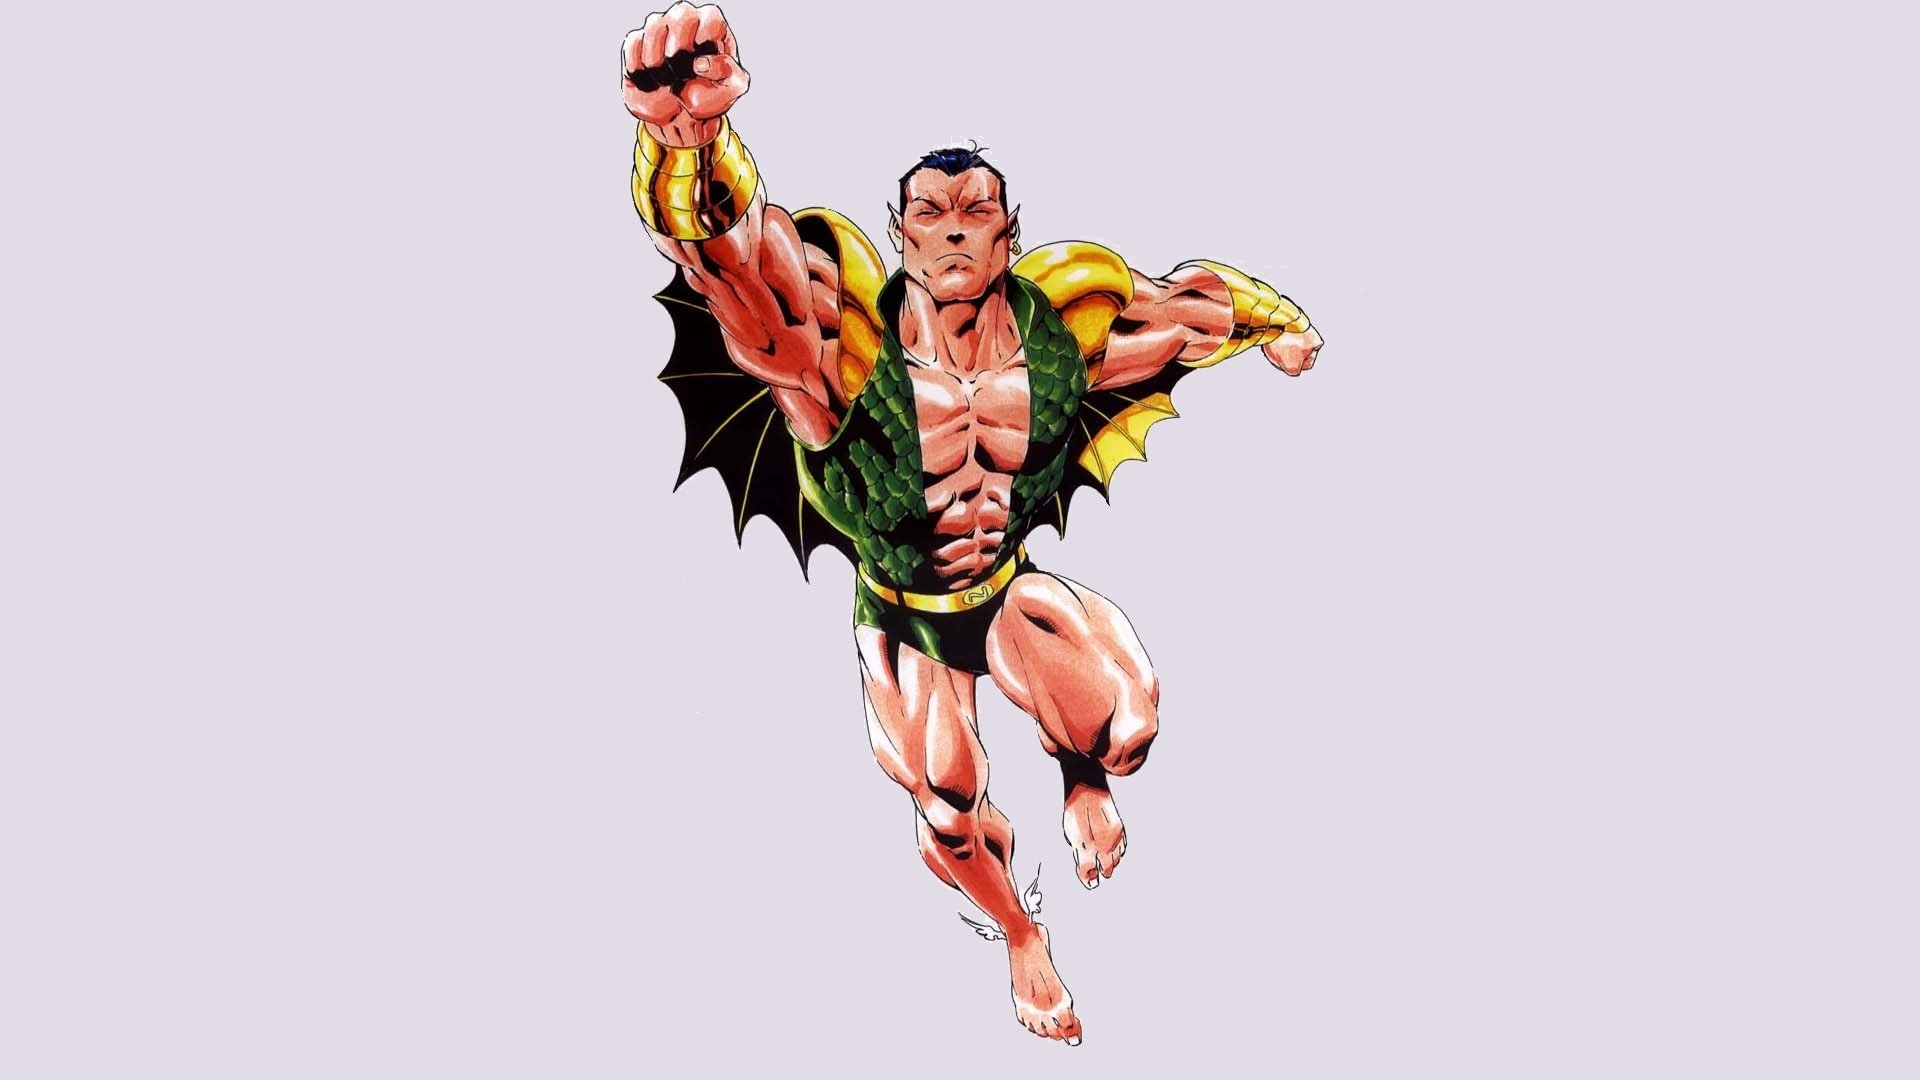 4 Namor The Sub Mariner HD Wallpapers Background Images 1920x1080